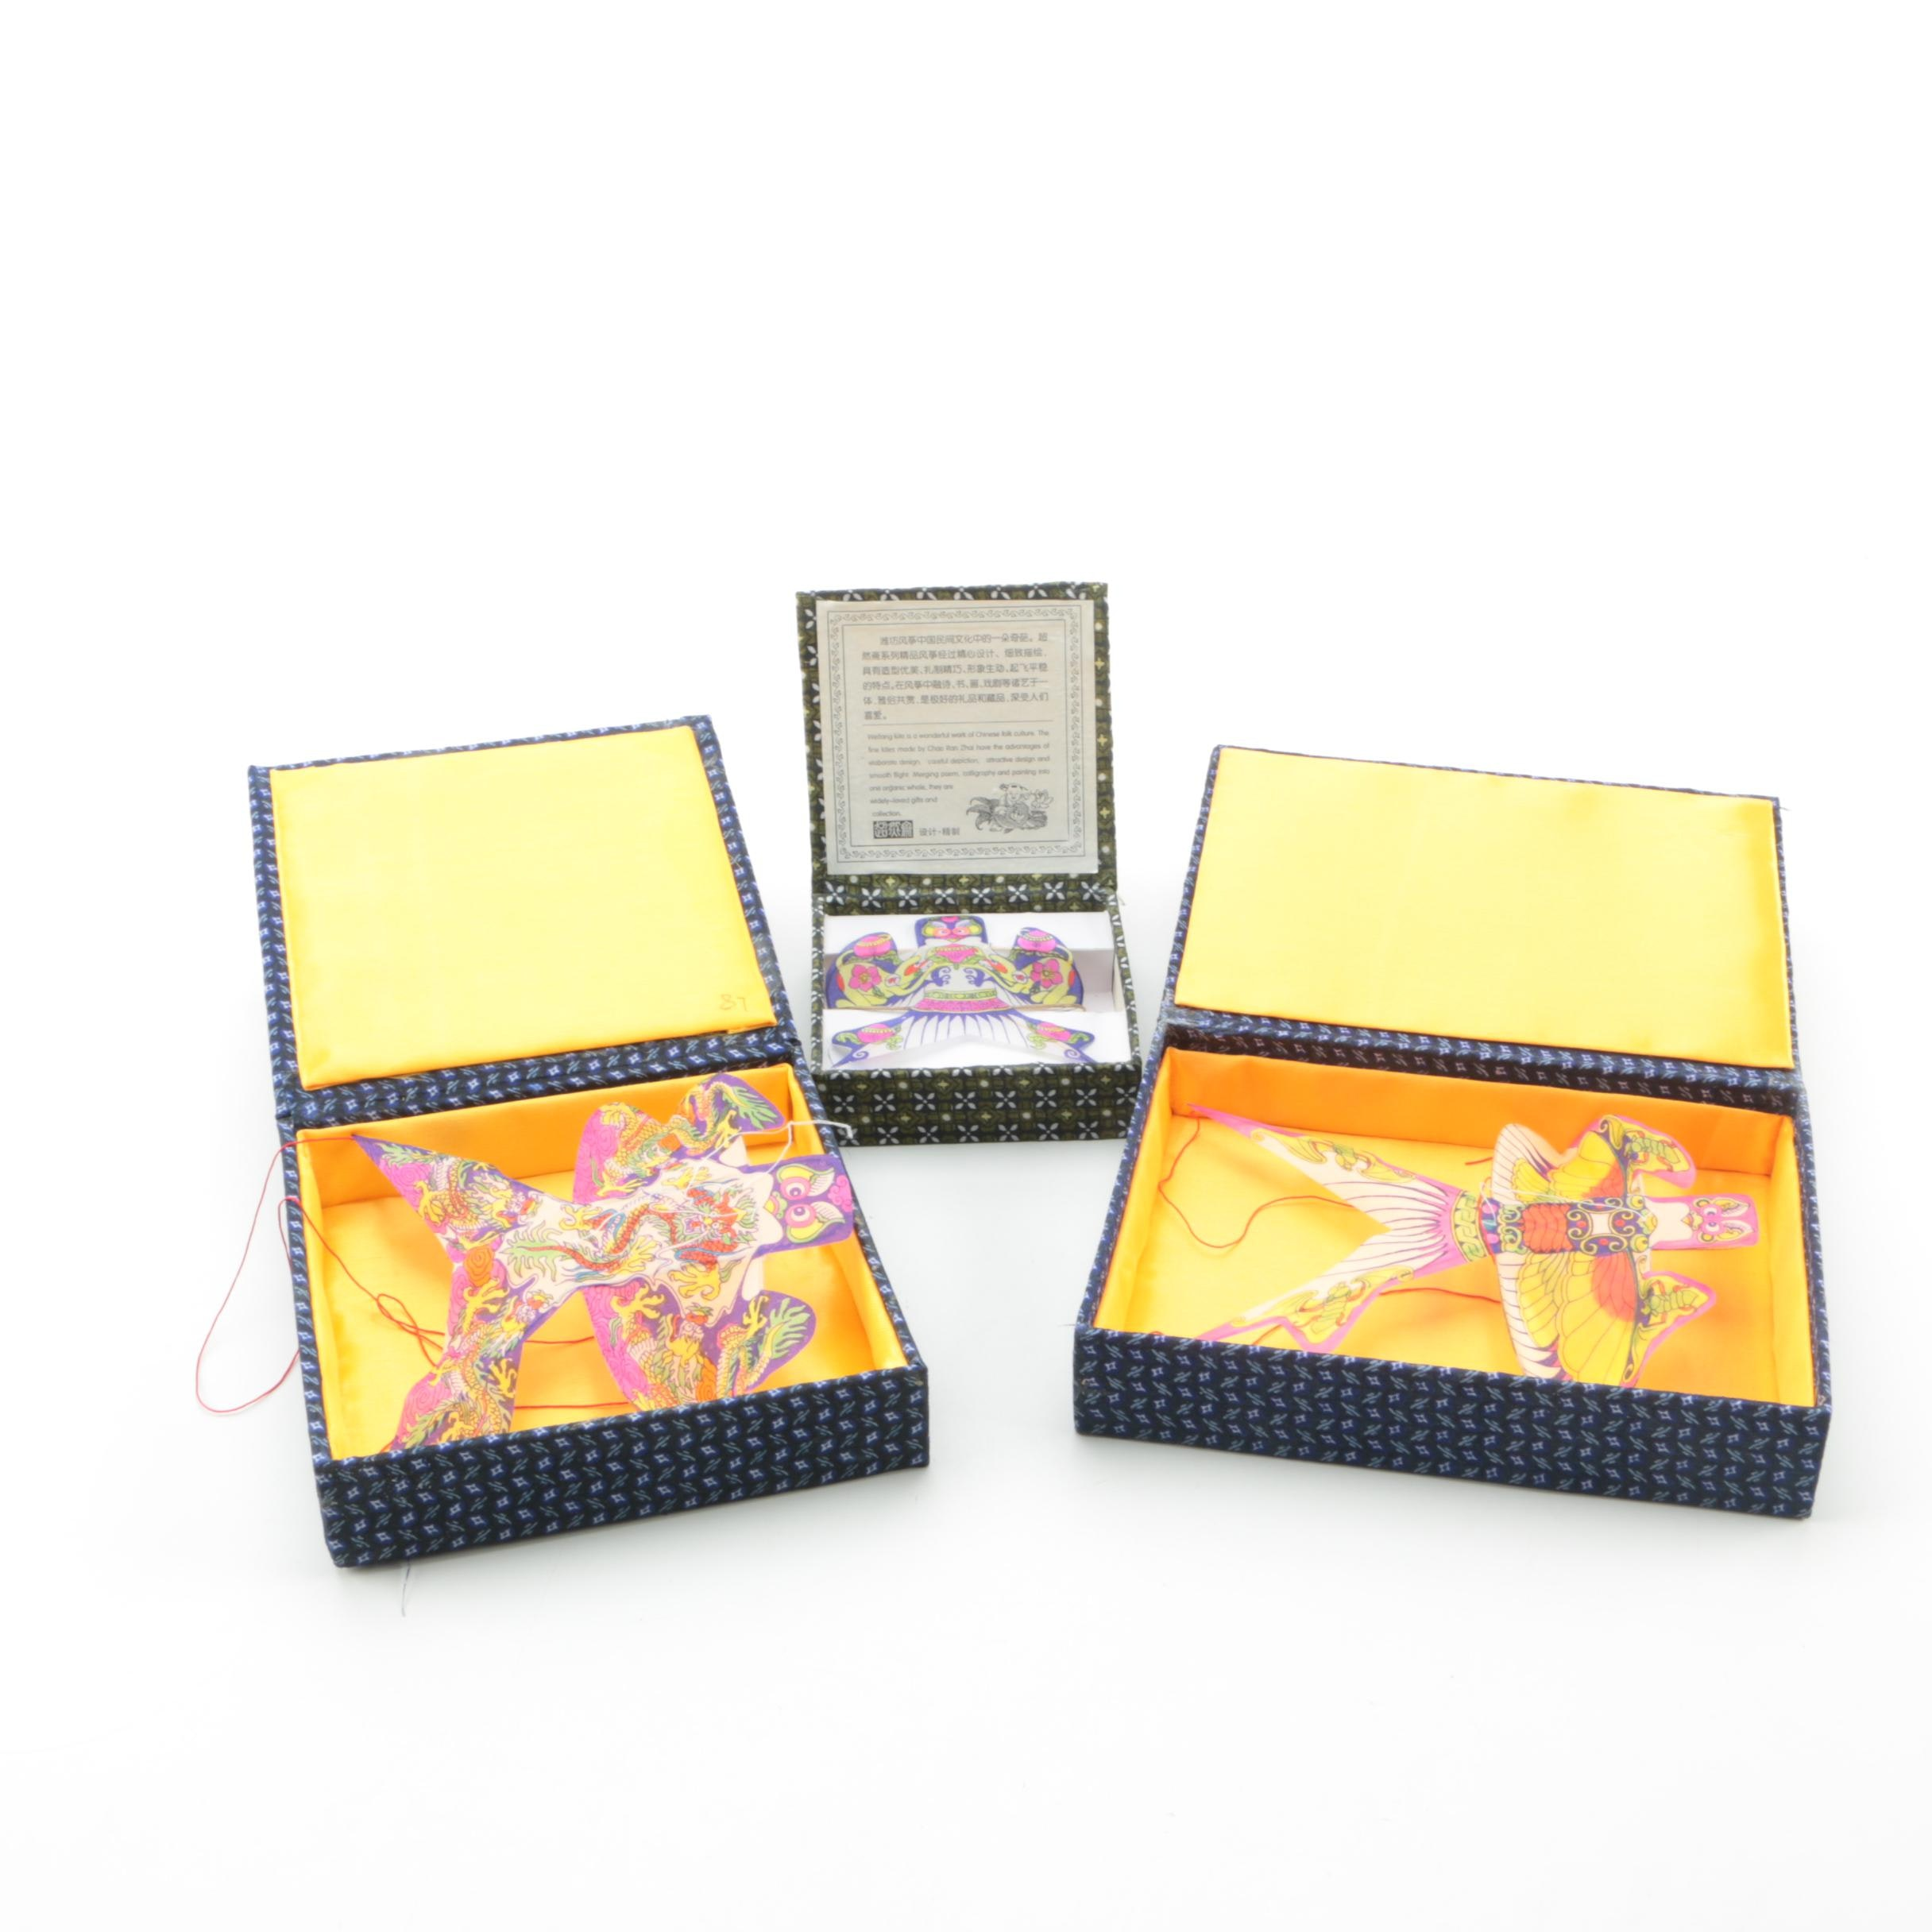 Chinese Decorative Fabric Kites in Boxes